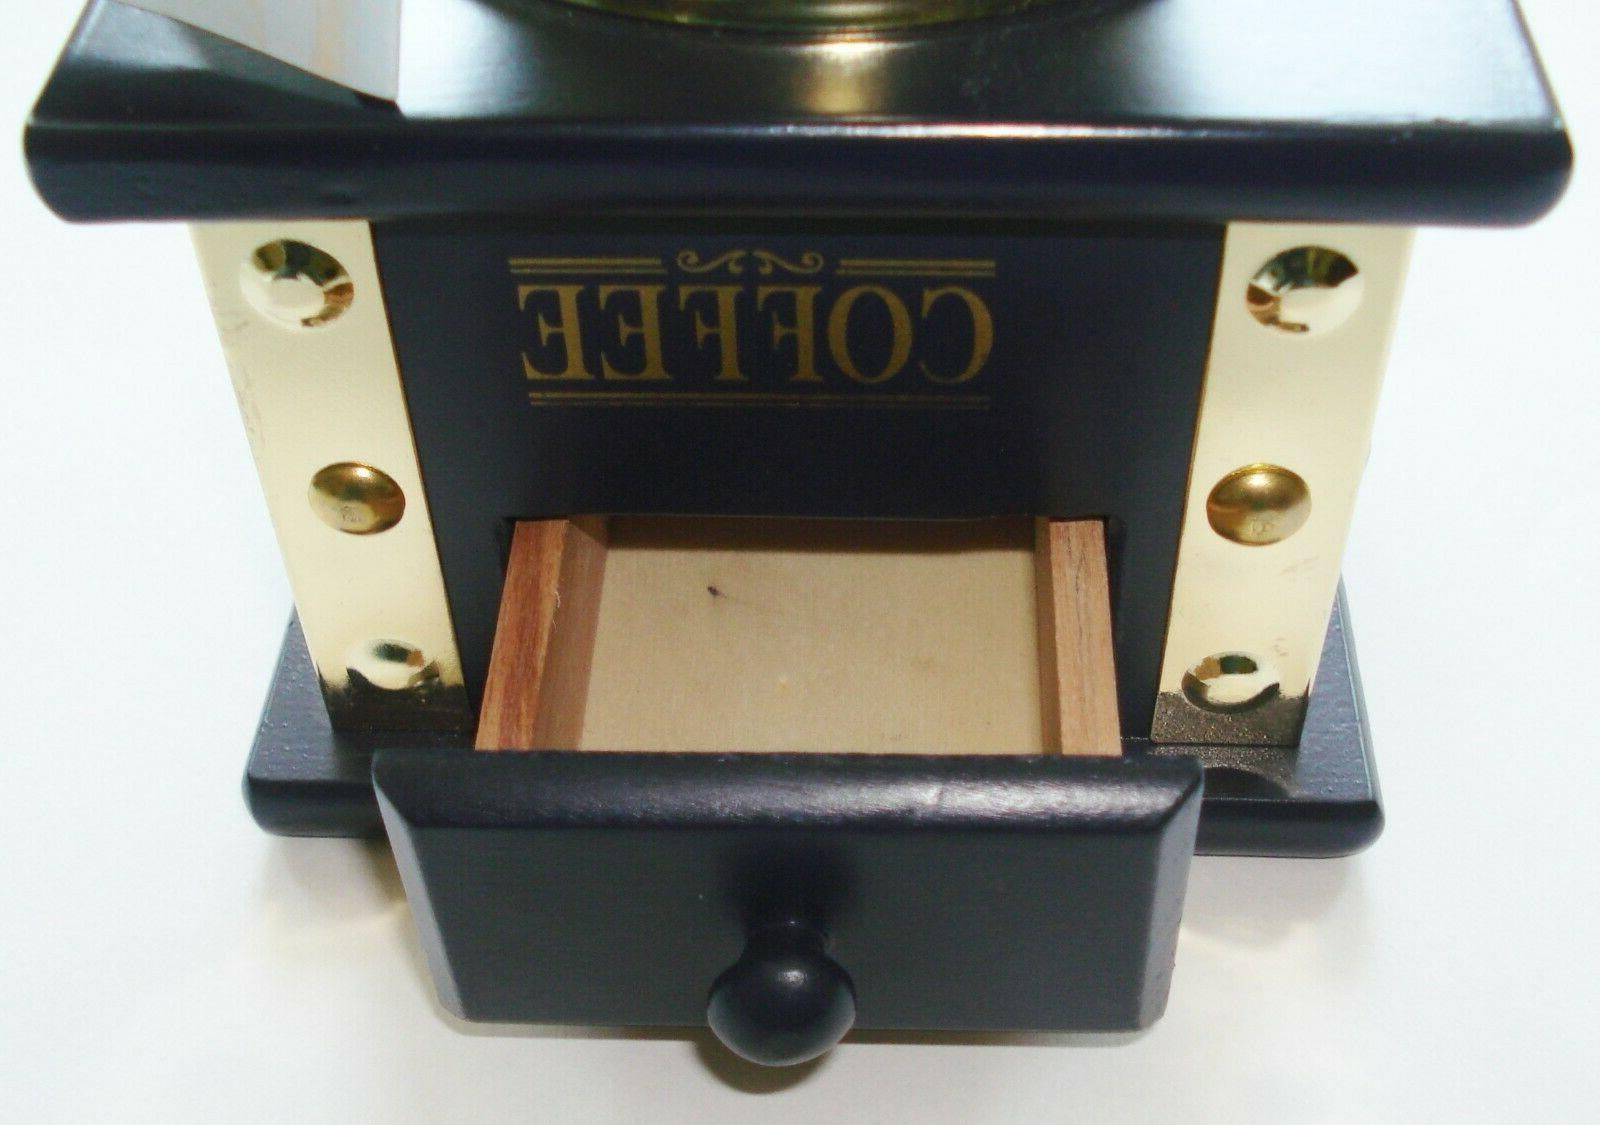 Bisetti Coffee Grinder, New, in Italy